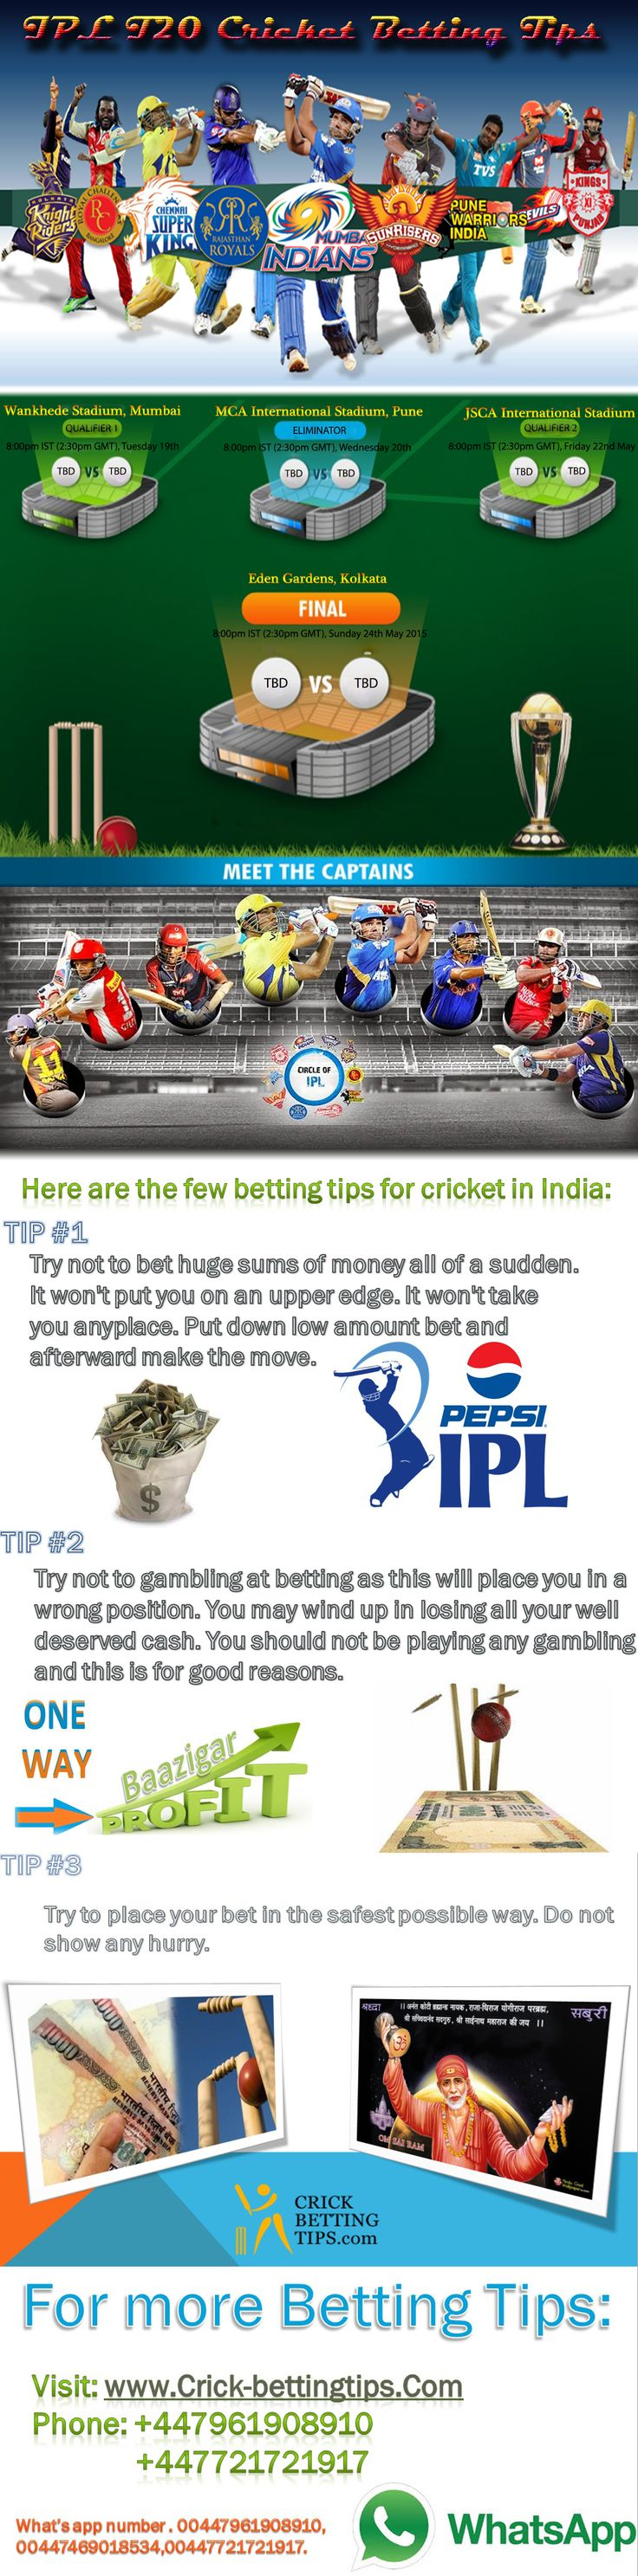 cricket betting tips free india